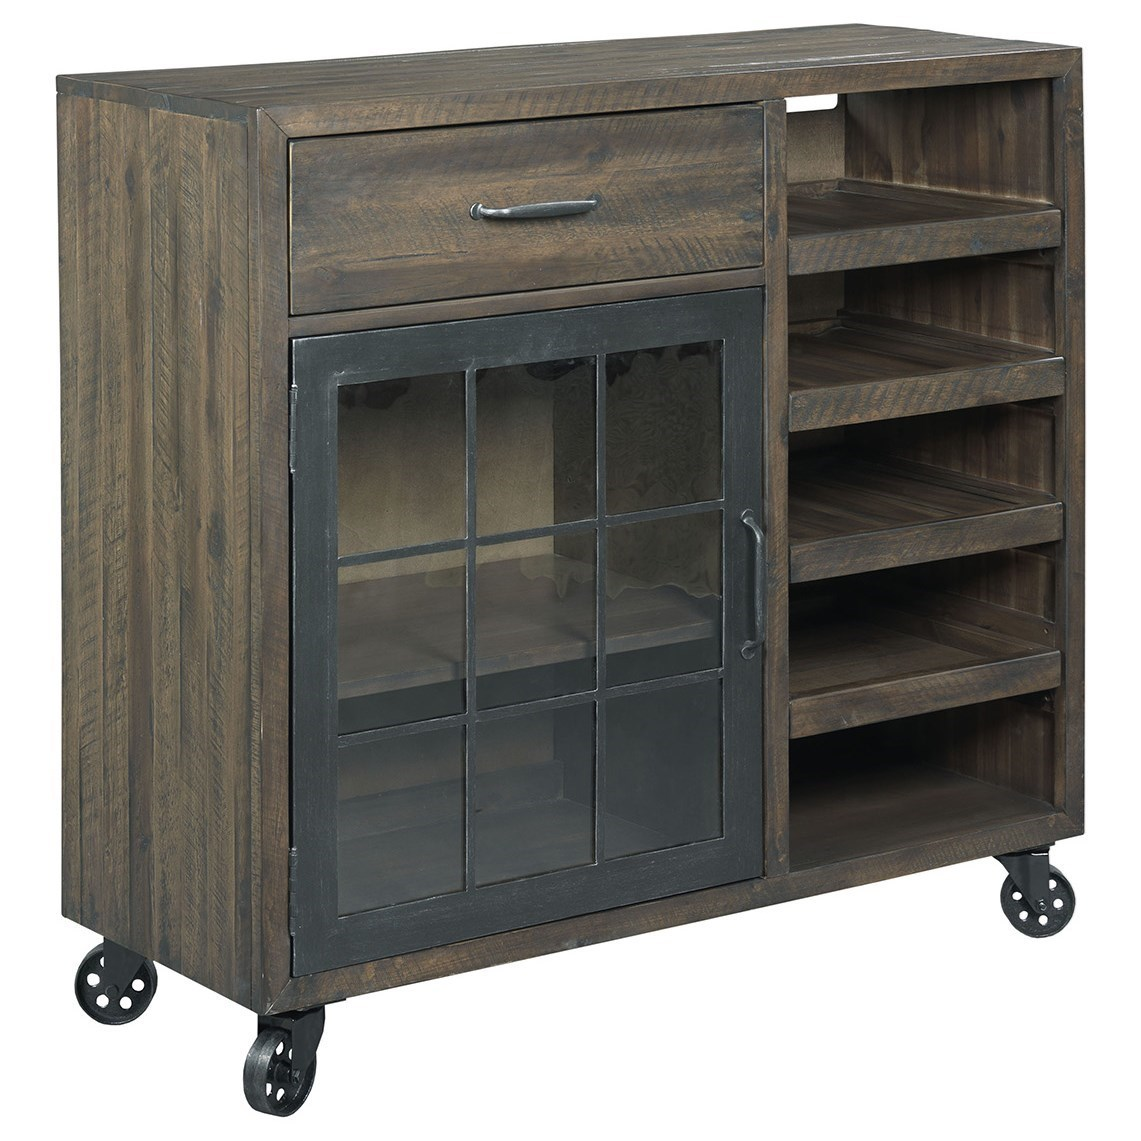 Hidden Treasures Bar Trolley                                  by Hammary at Pedigo Furniture